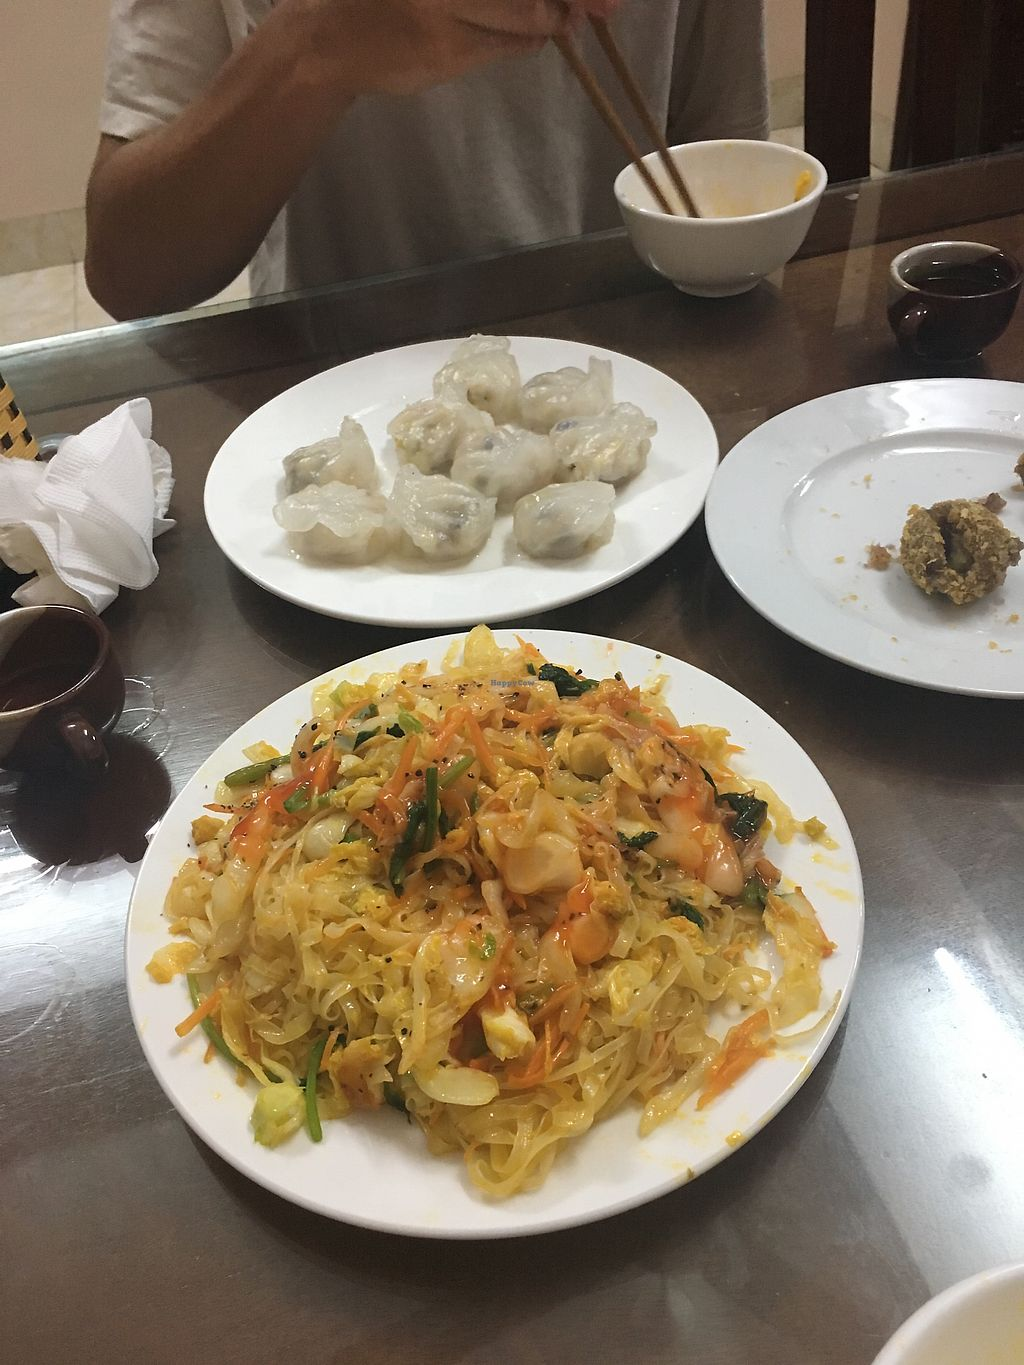 "Photo of Huong Sen  by <a href=""/members/profile/happybecca"">happybecca</a> <br/>Dumplings, fried noodles, the last sweet potato ball <br/> April 5, 2018  - <a href='/contact/abuse/image/91509/381181'>Report</a>"